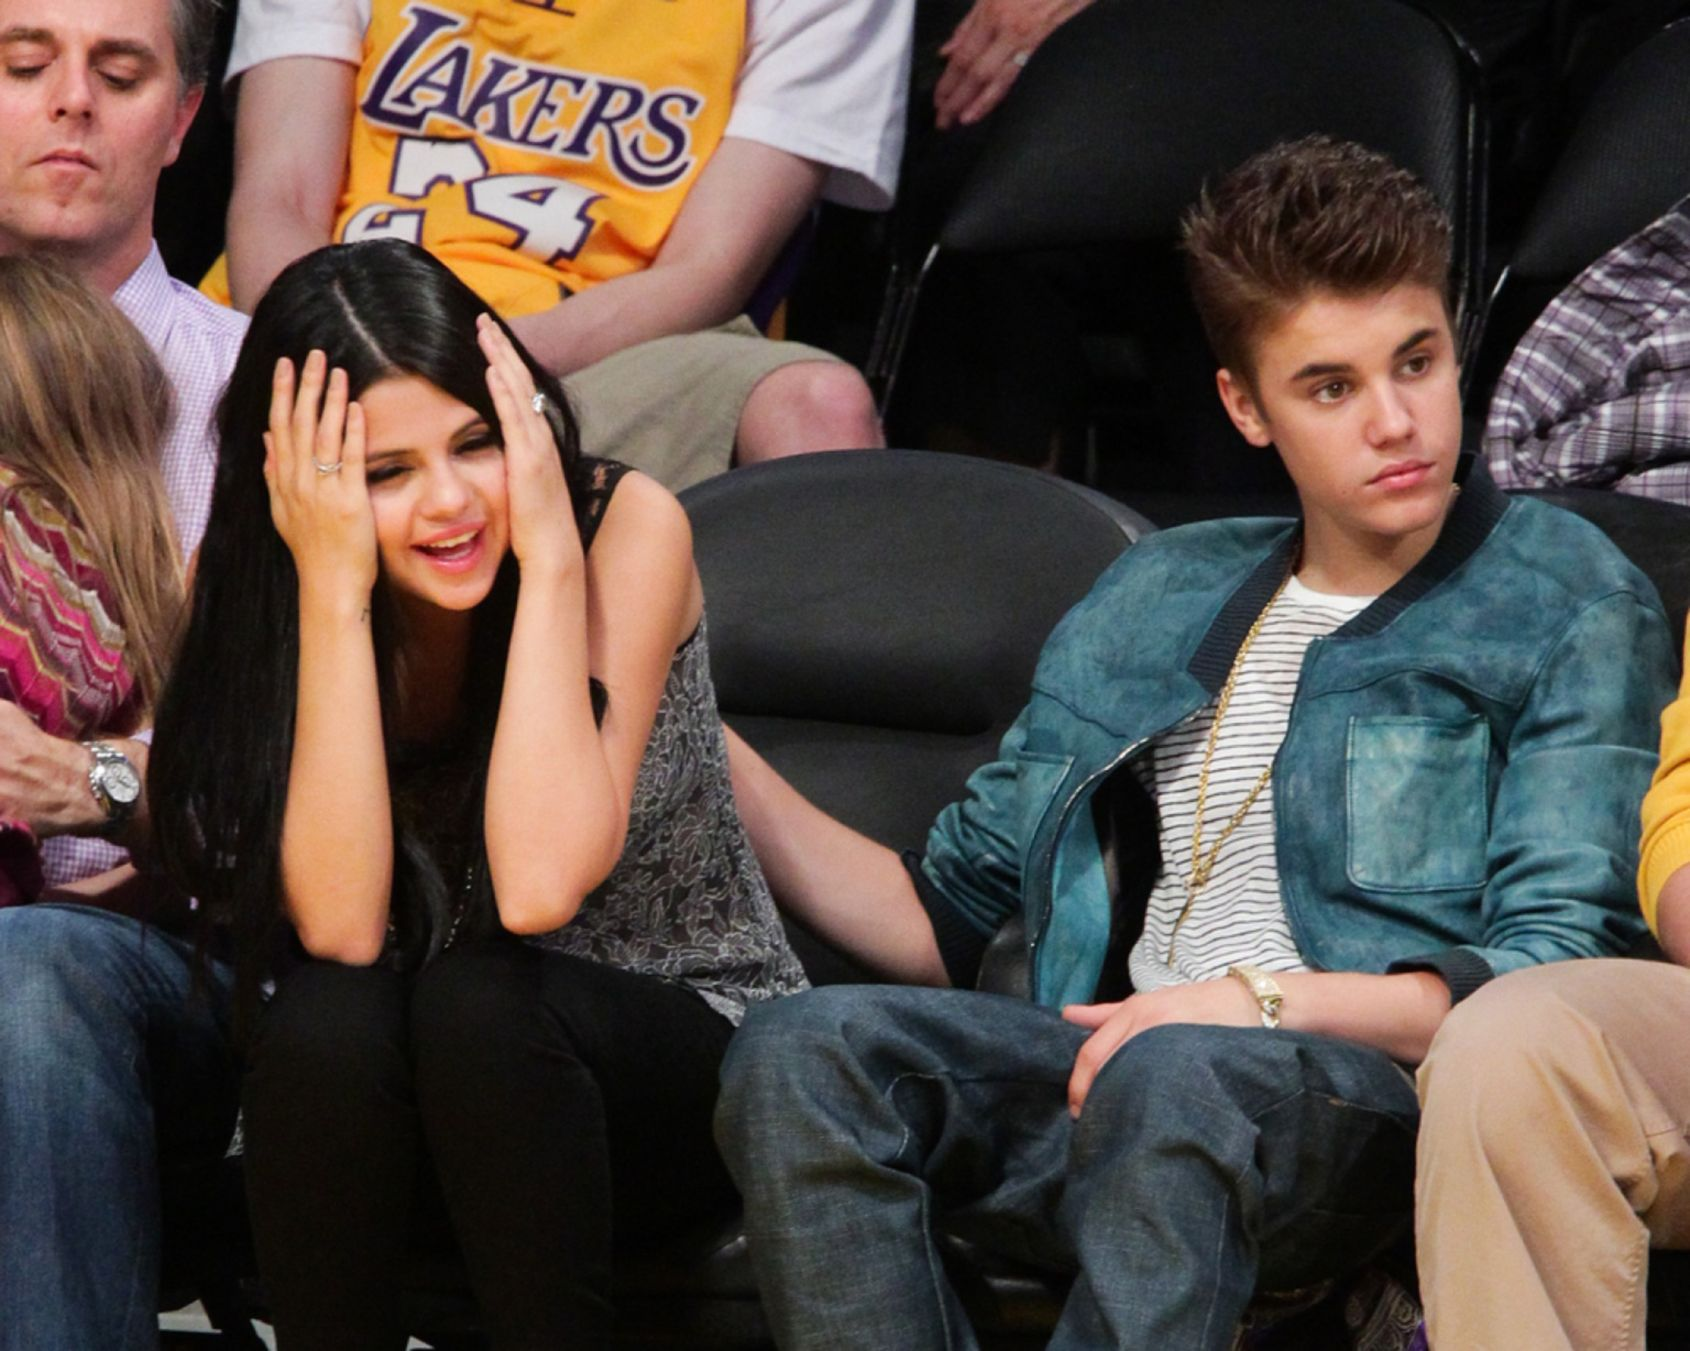 Download free HD Selena Gomez And Justin Bieber Wallpaper, image